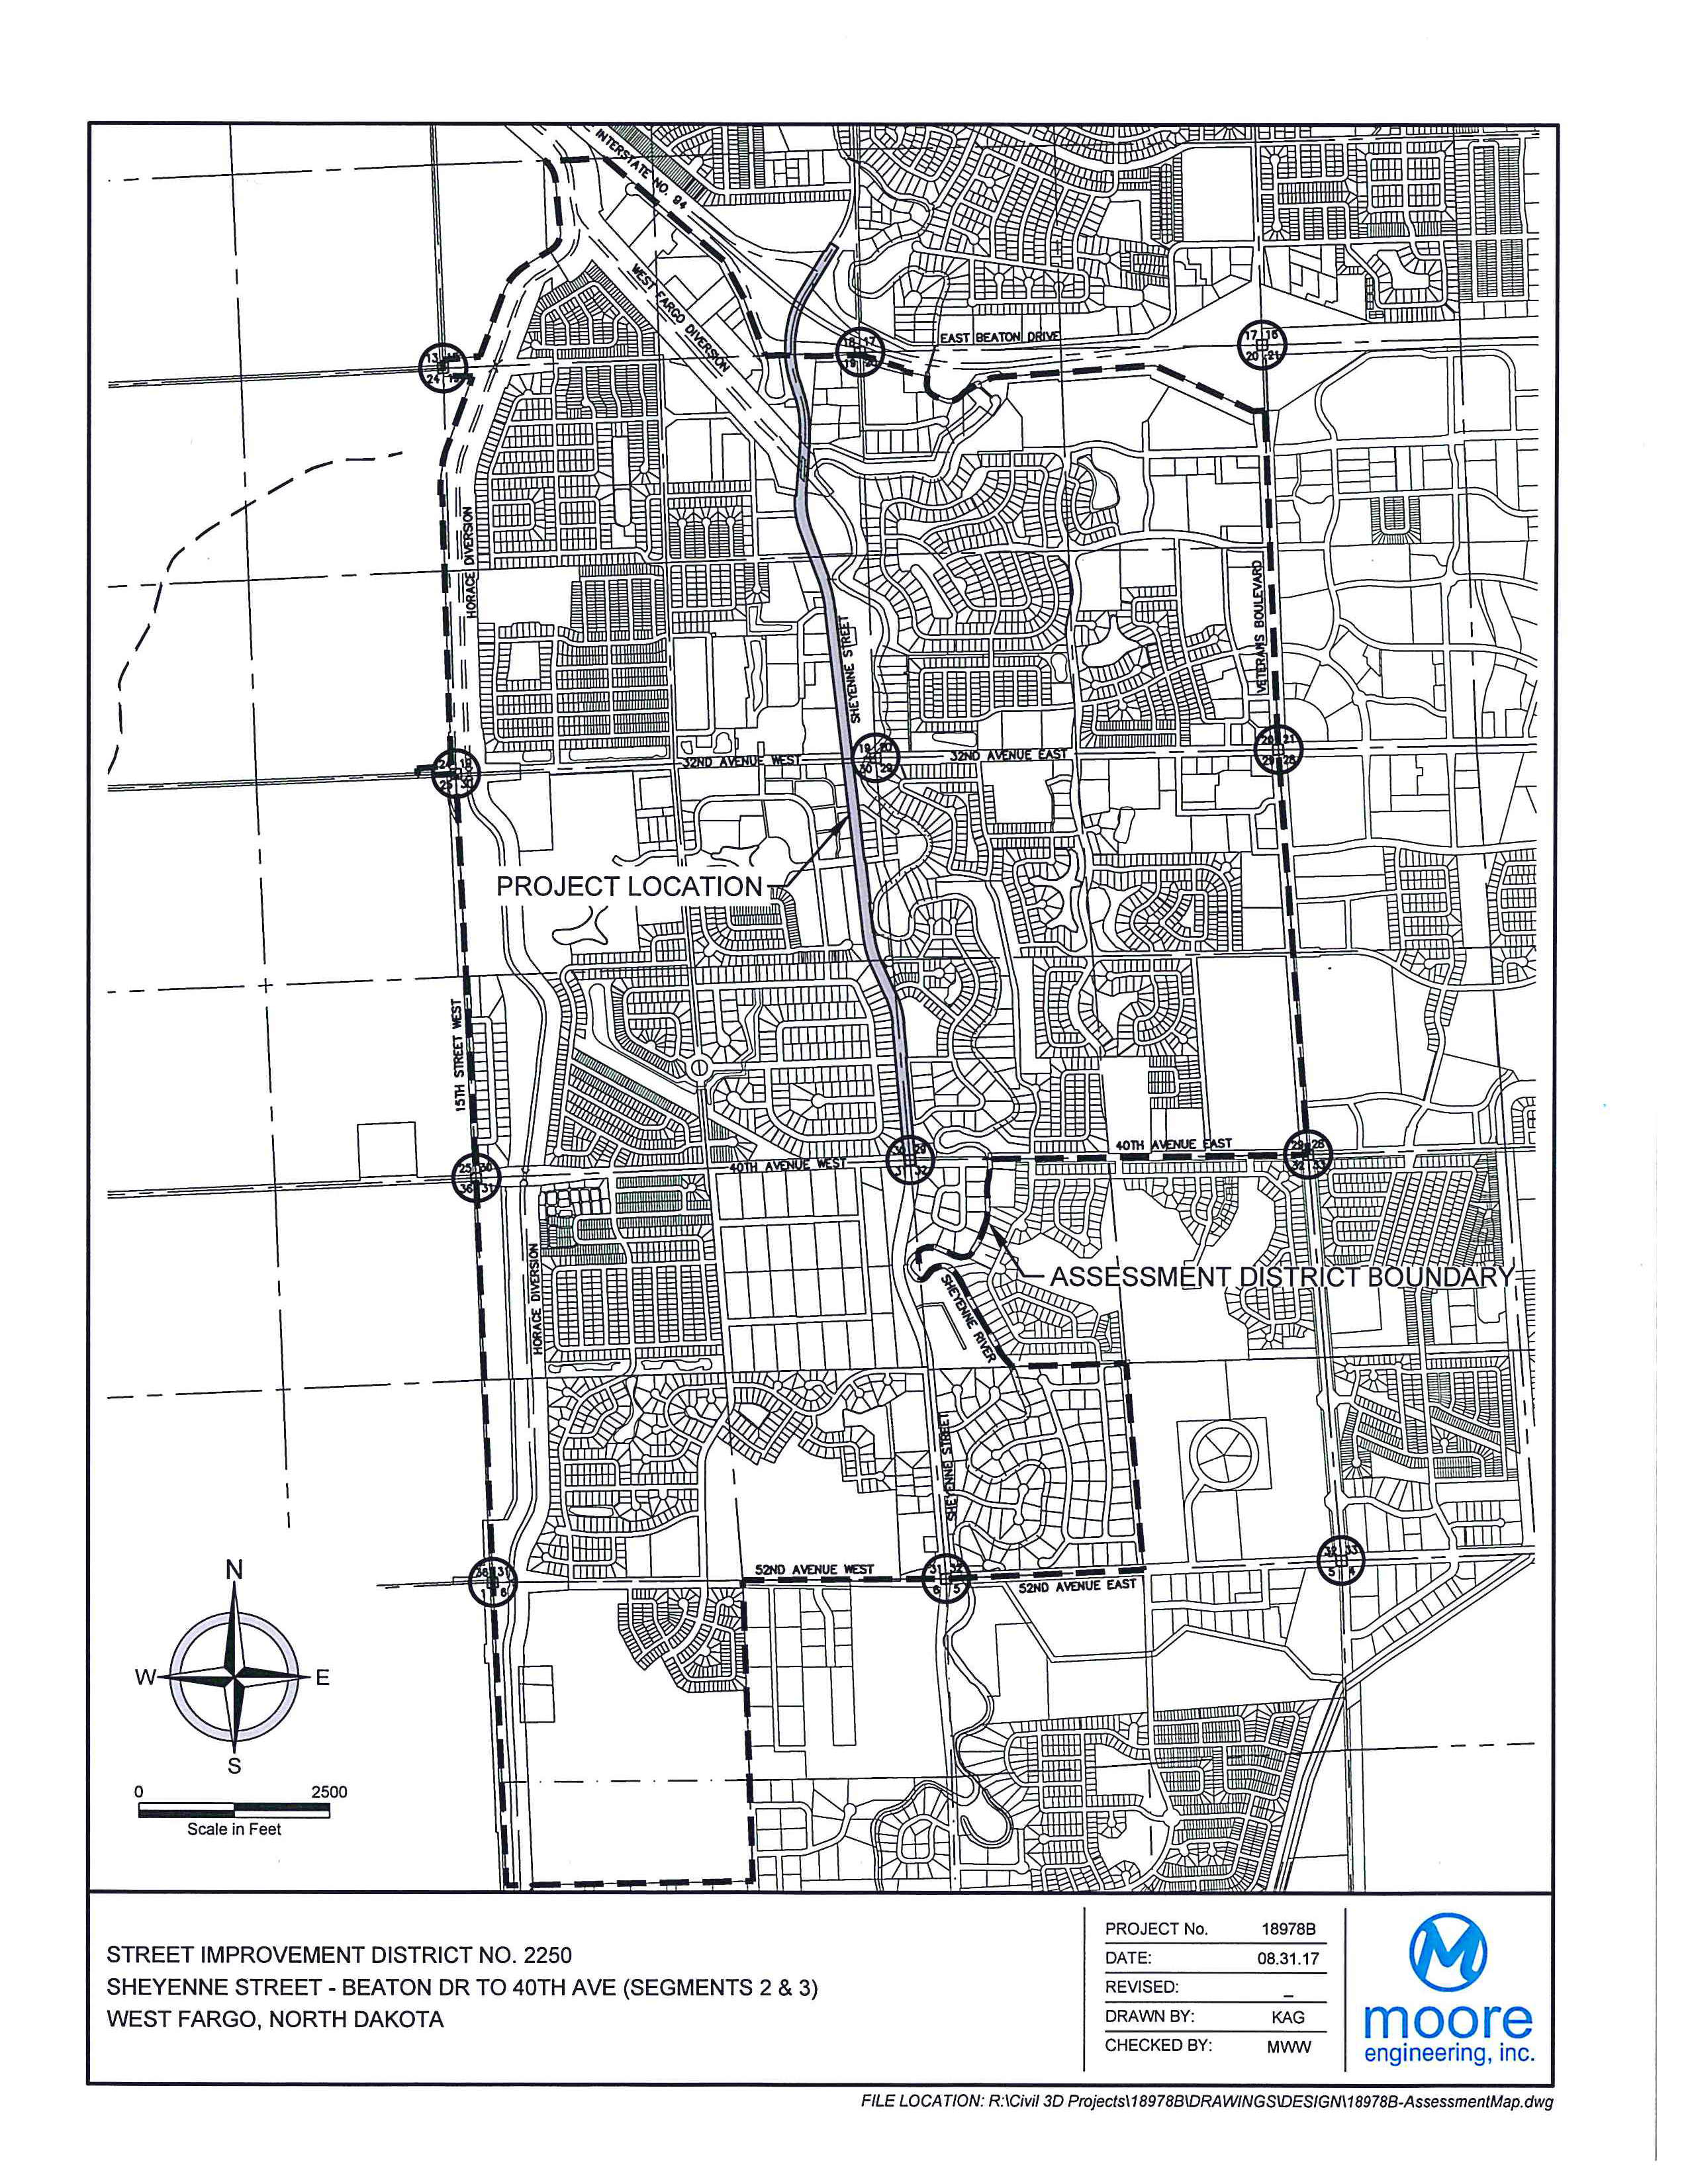 District No. 2250 Sheyenne Street - Beaton Drive to 40th Avenue W. Assessment District Boundary Map